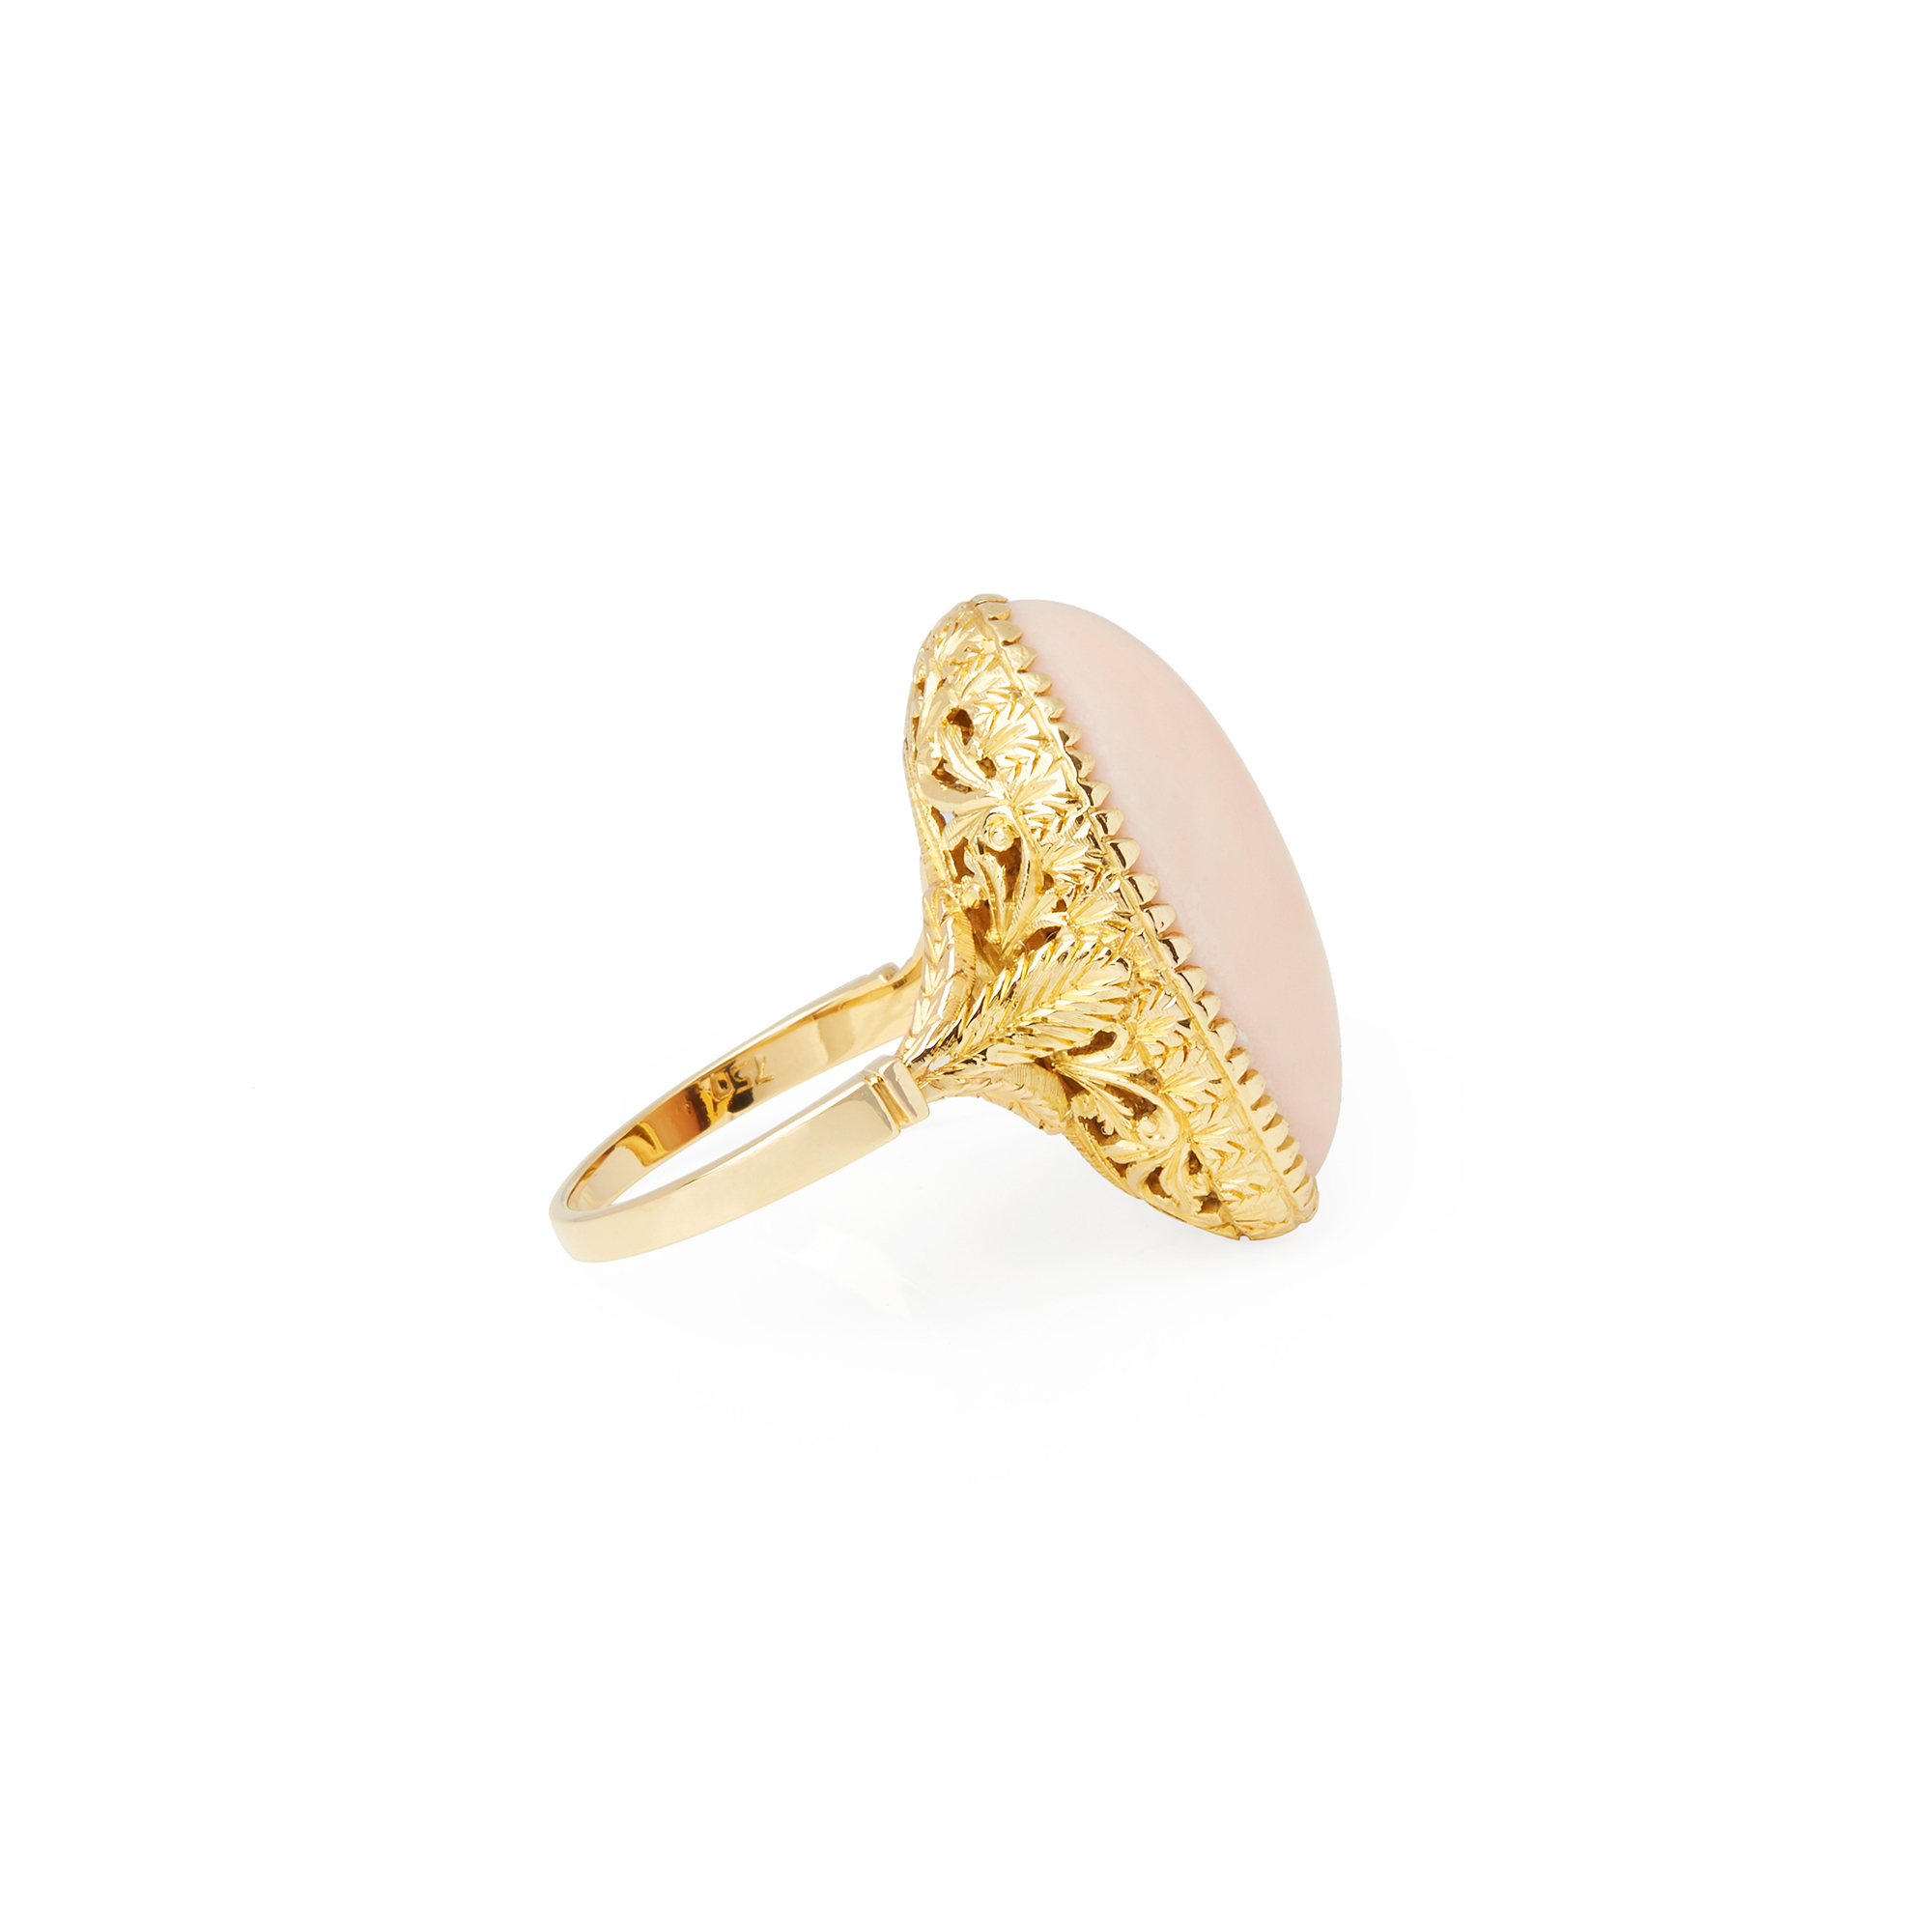 Unbranded 18ct Yellow Gold Pink Coral Ring - Image 5 of 6